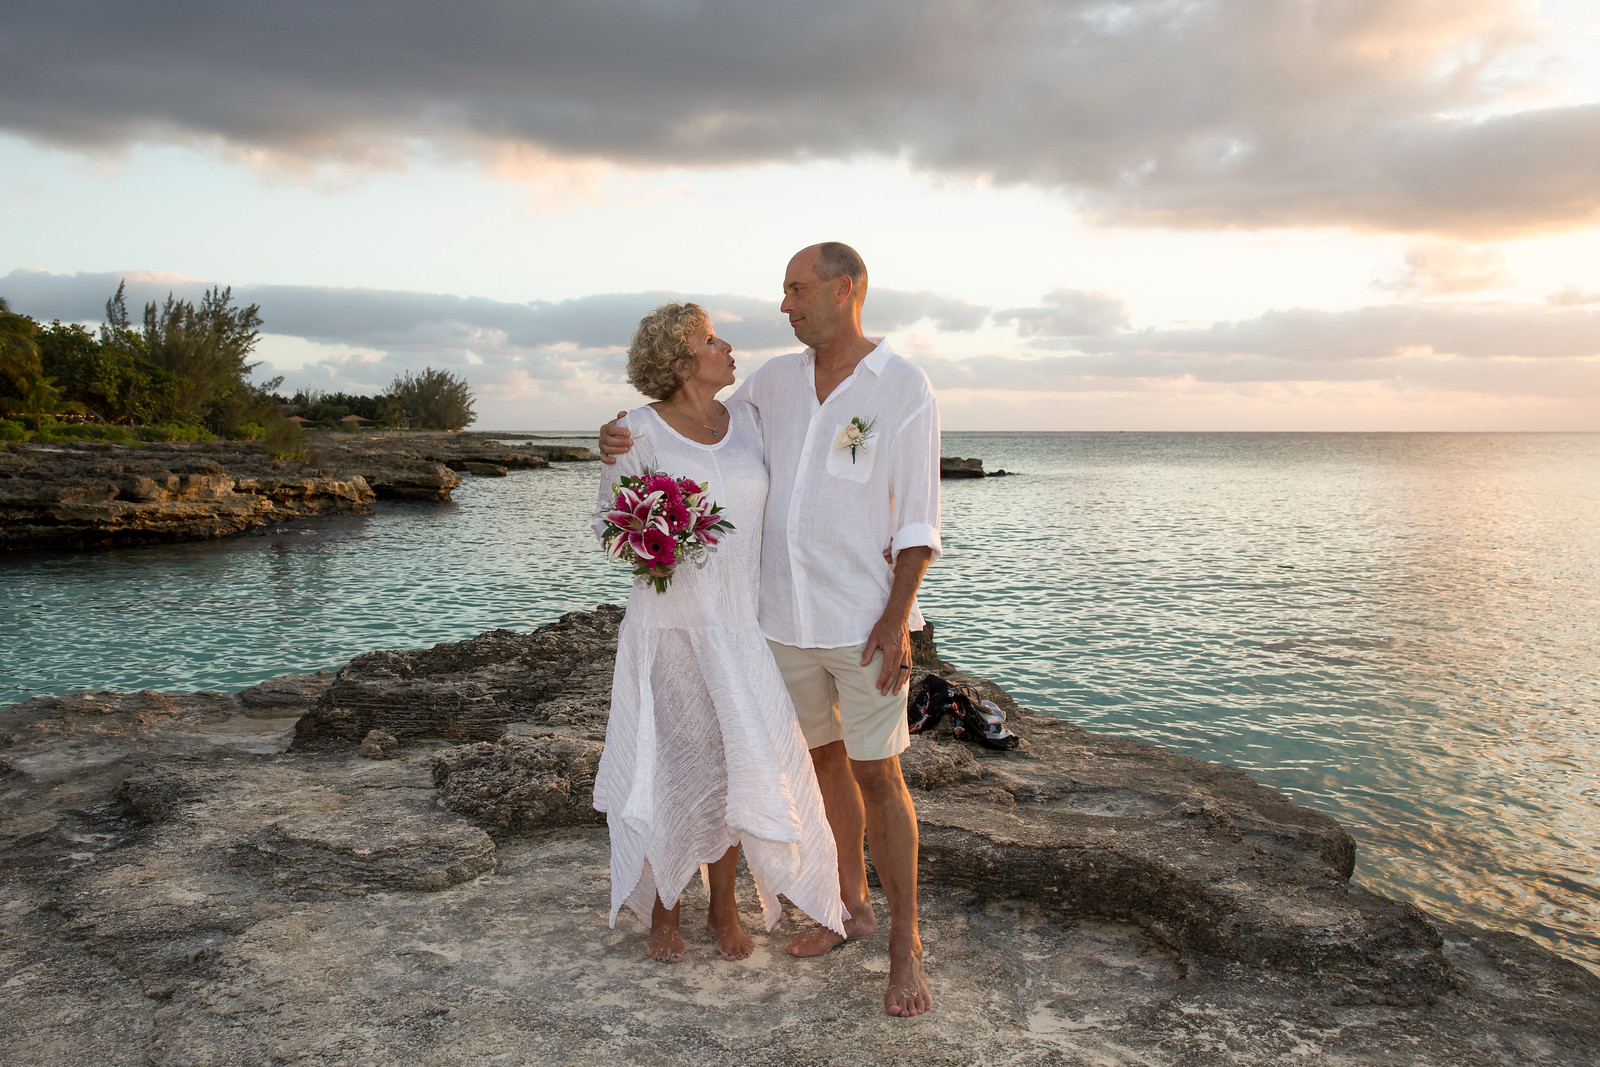 My Wedding in the Cayman Islands